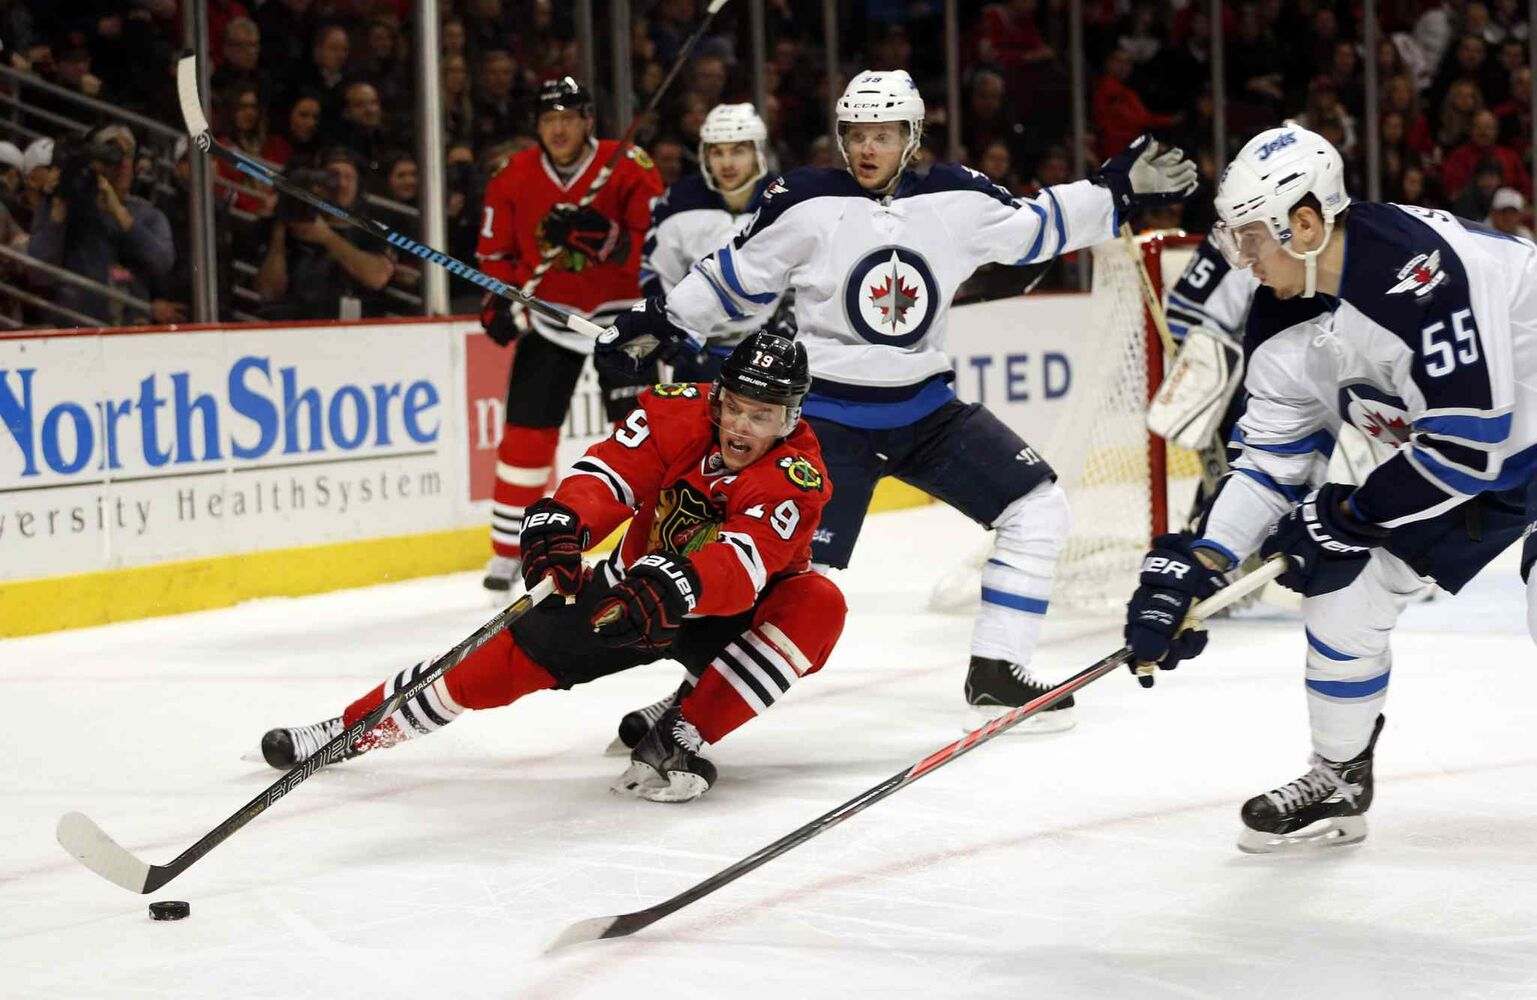 Blackhawks captain Jonathan Toews loses control of the puck in the Jets' end. (Scott Strazzante / Chicago Tribune / MCT)